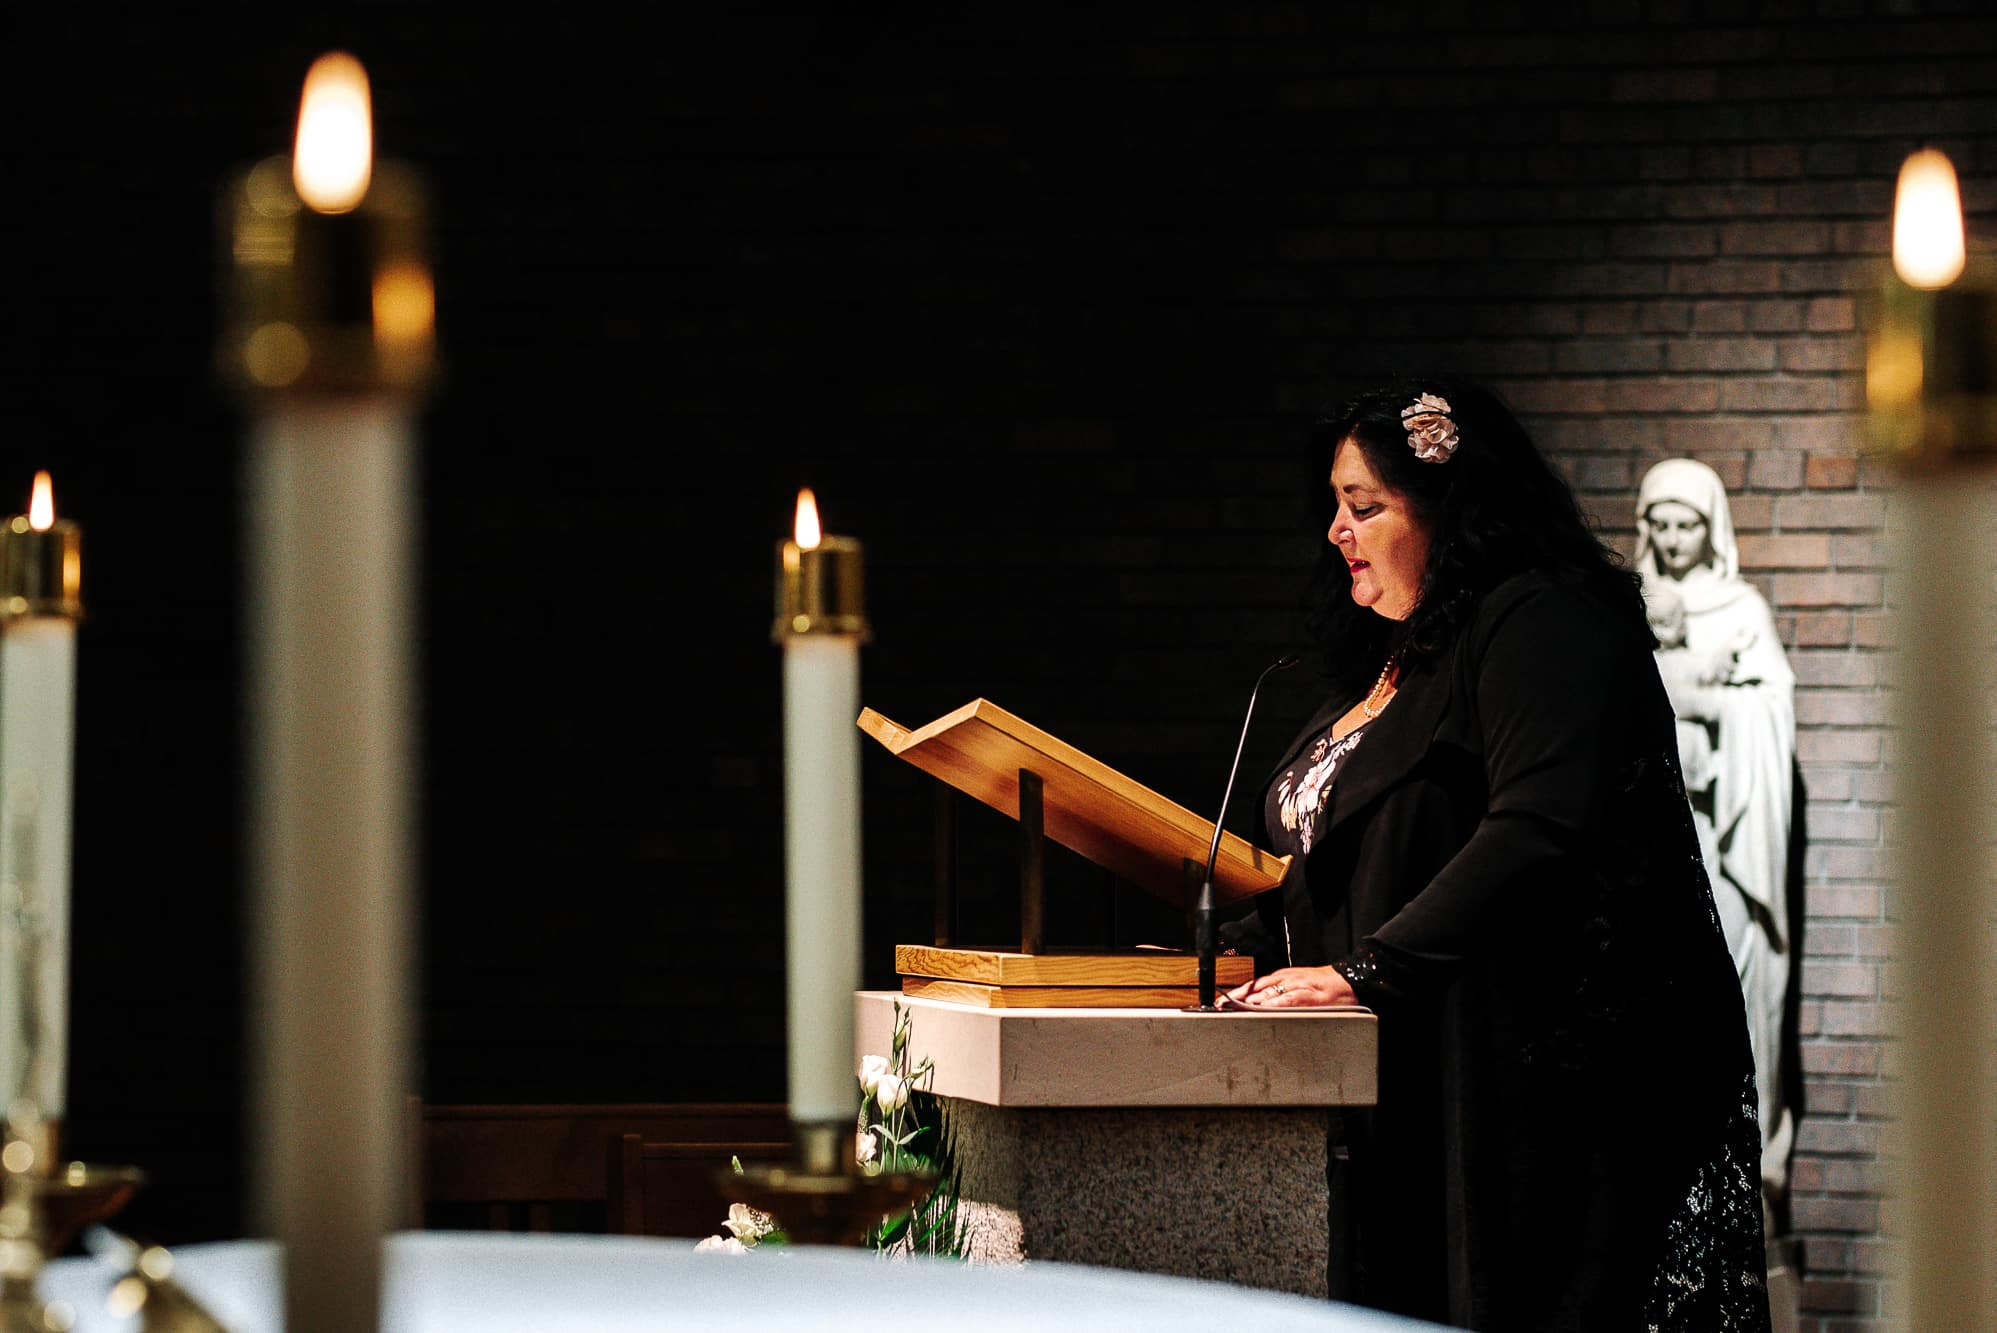 female guest giving a reading during service